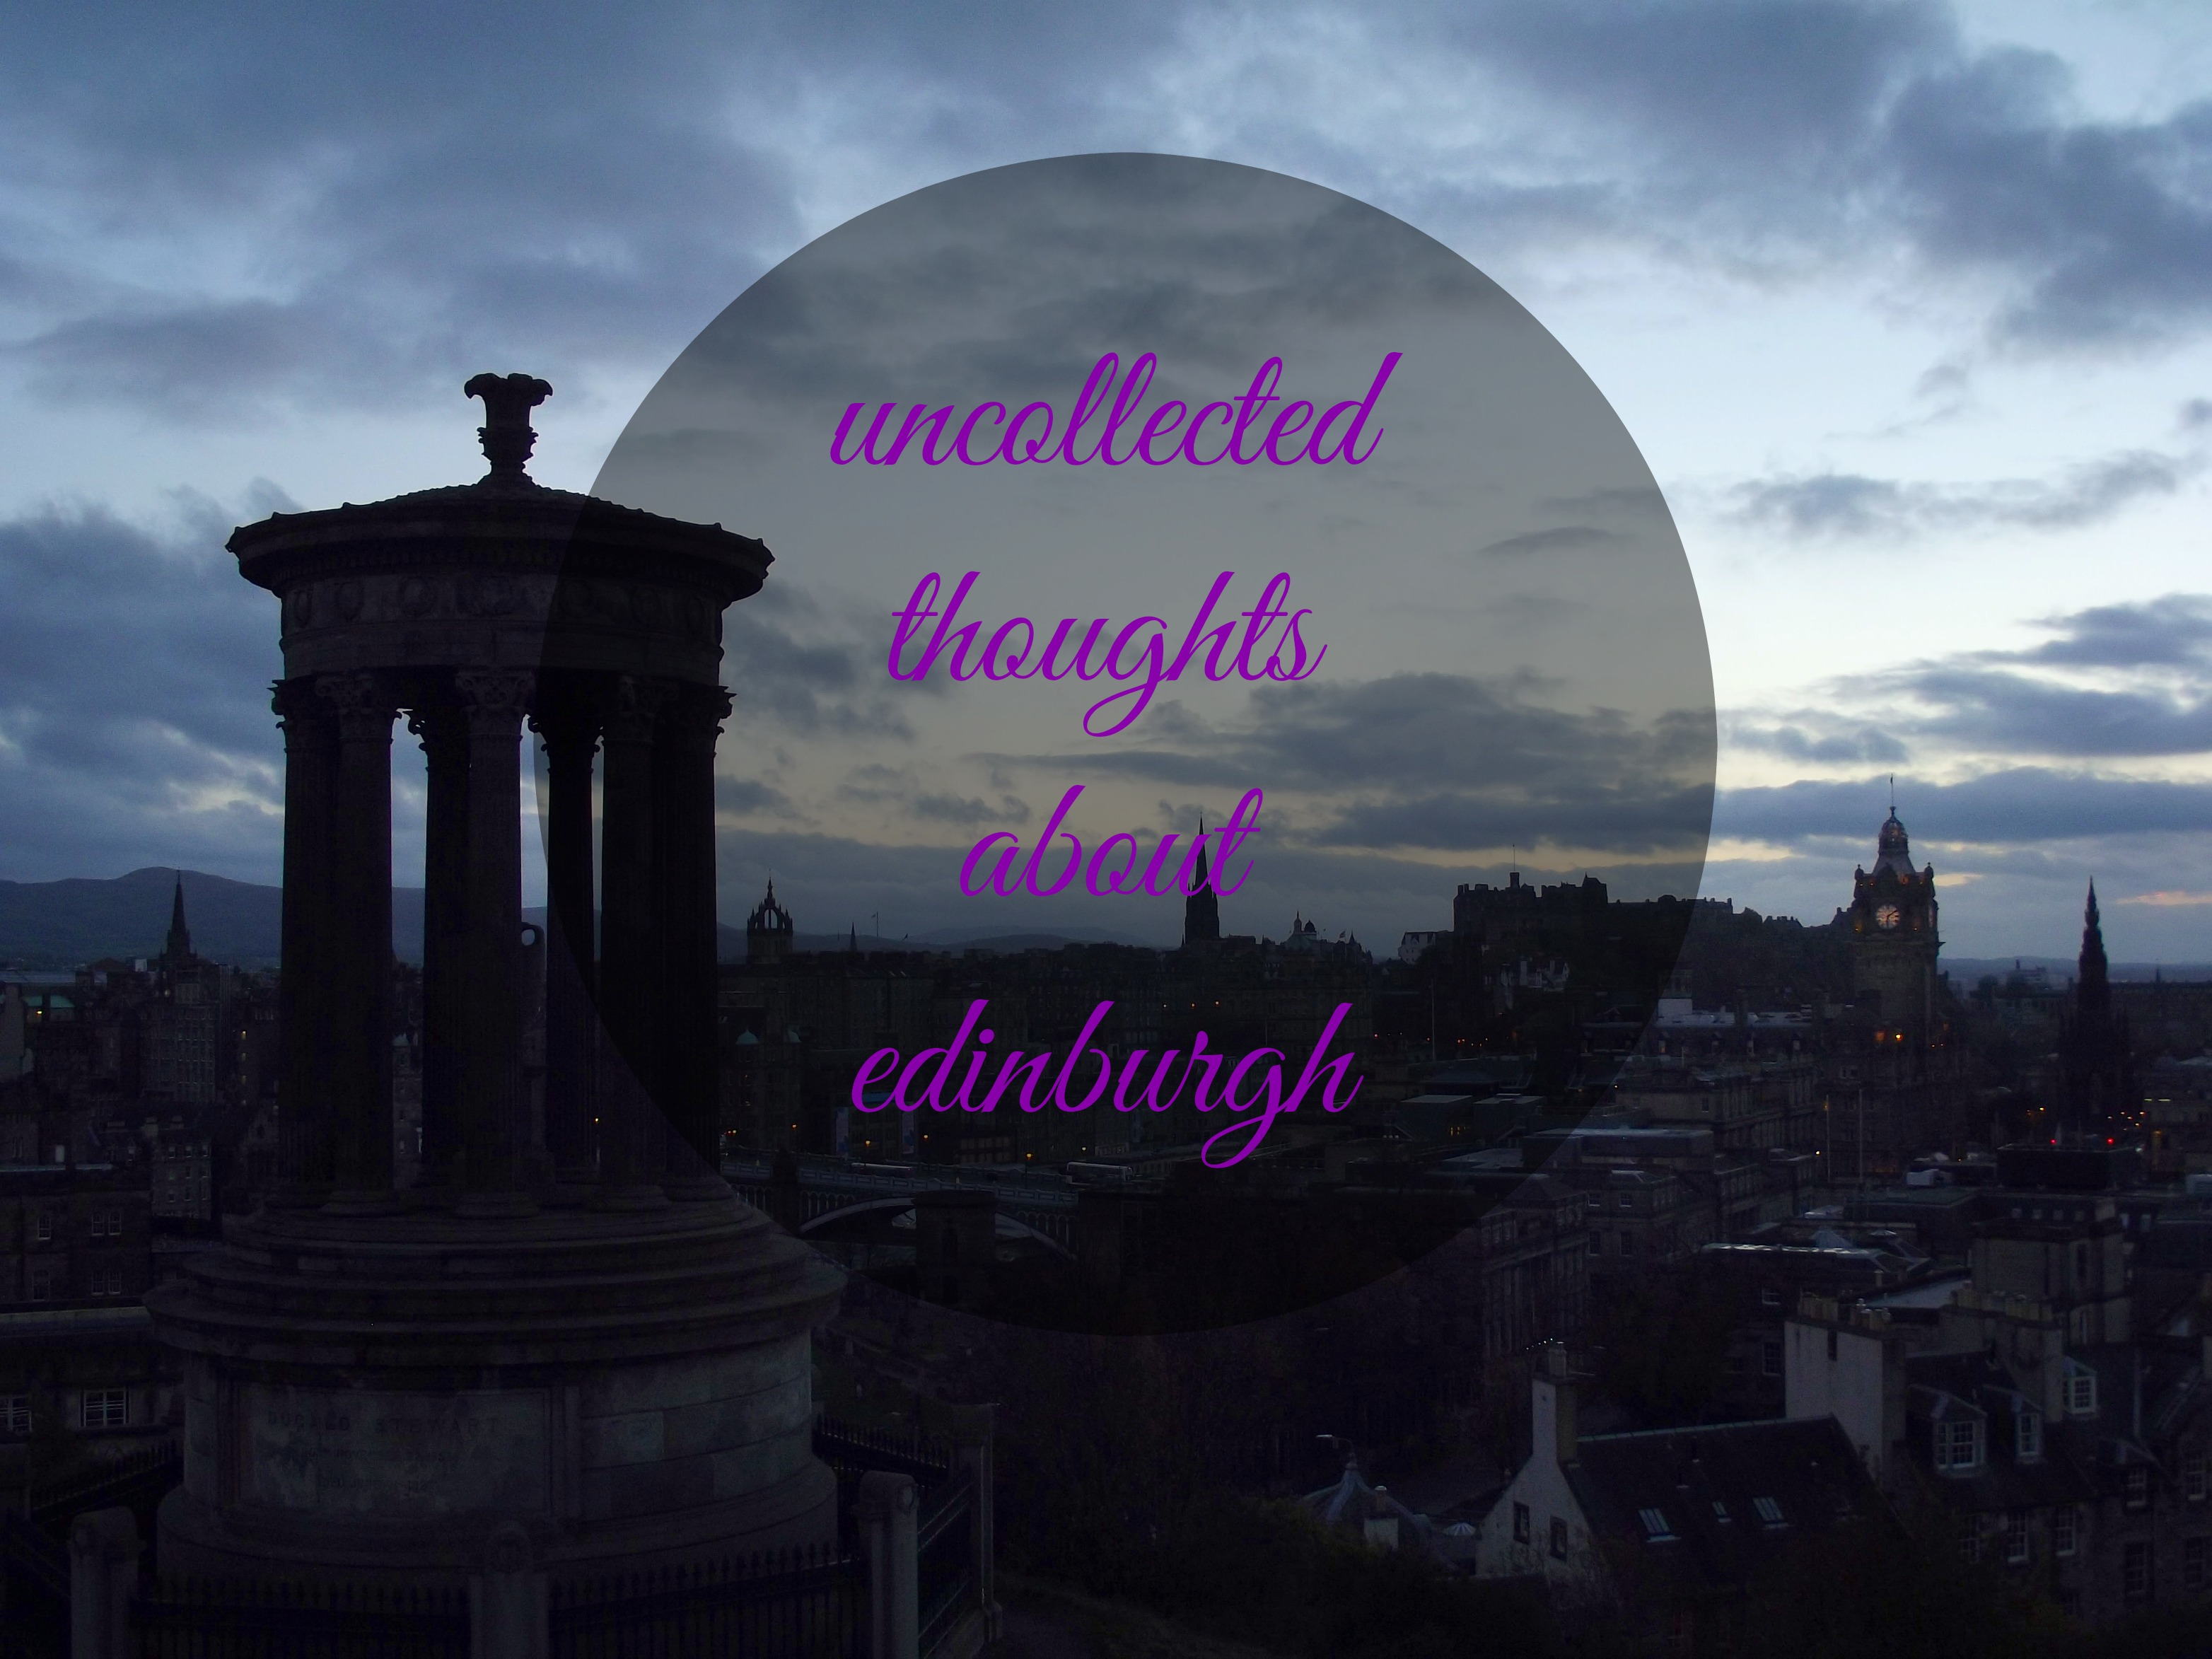 Uncollected thoughts edinburgh